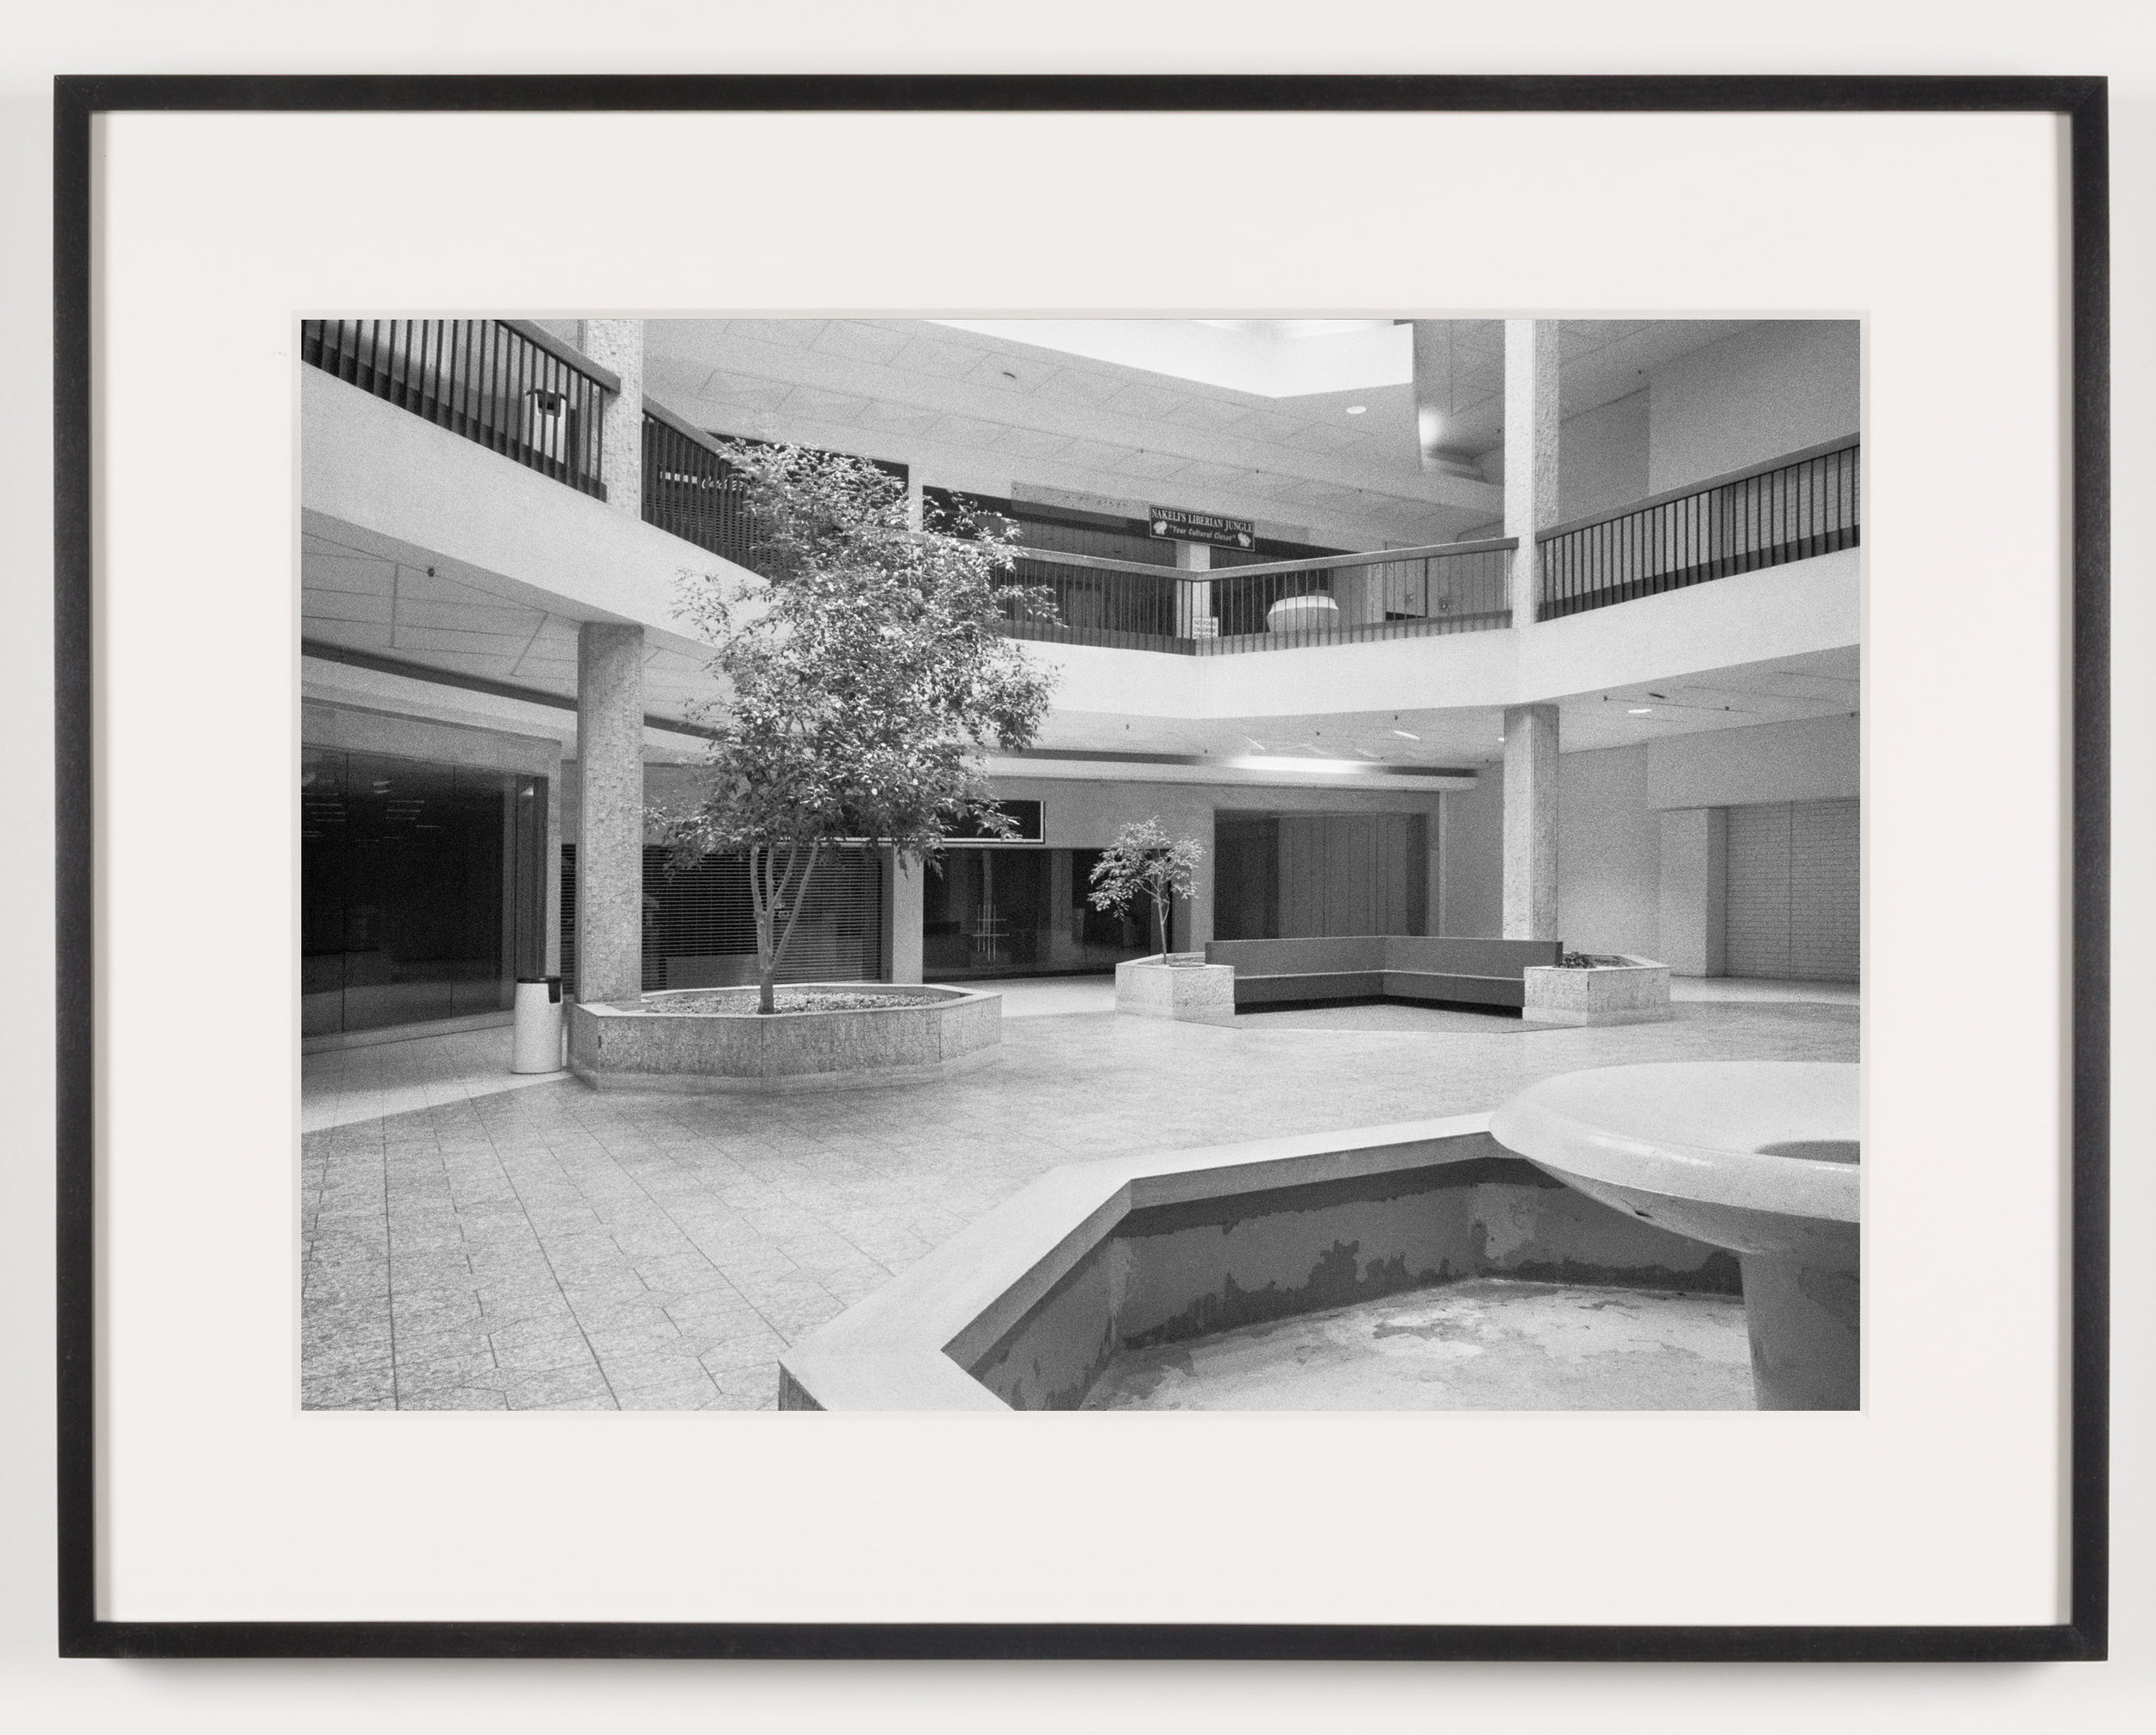 Randall Park Mall (View of Fountain, Seating Area), North Randall, OH, Est. 1976, Demo. 2014    2011   Epson Ultrachrome K3 archival ink jet print on Hahnemühle Photo Rag paper  21 5/8 x 28 1/8 inches   A Diagram of Forces, 2011